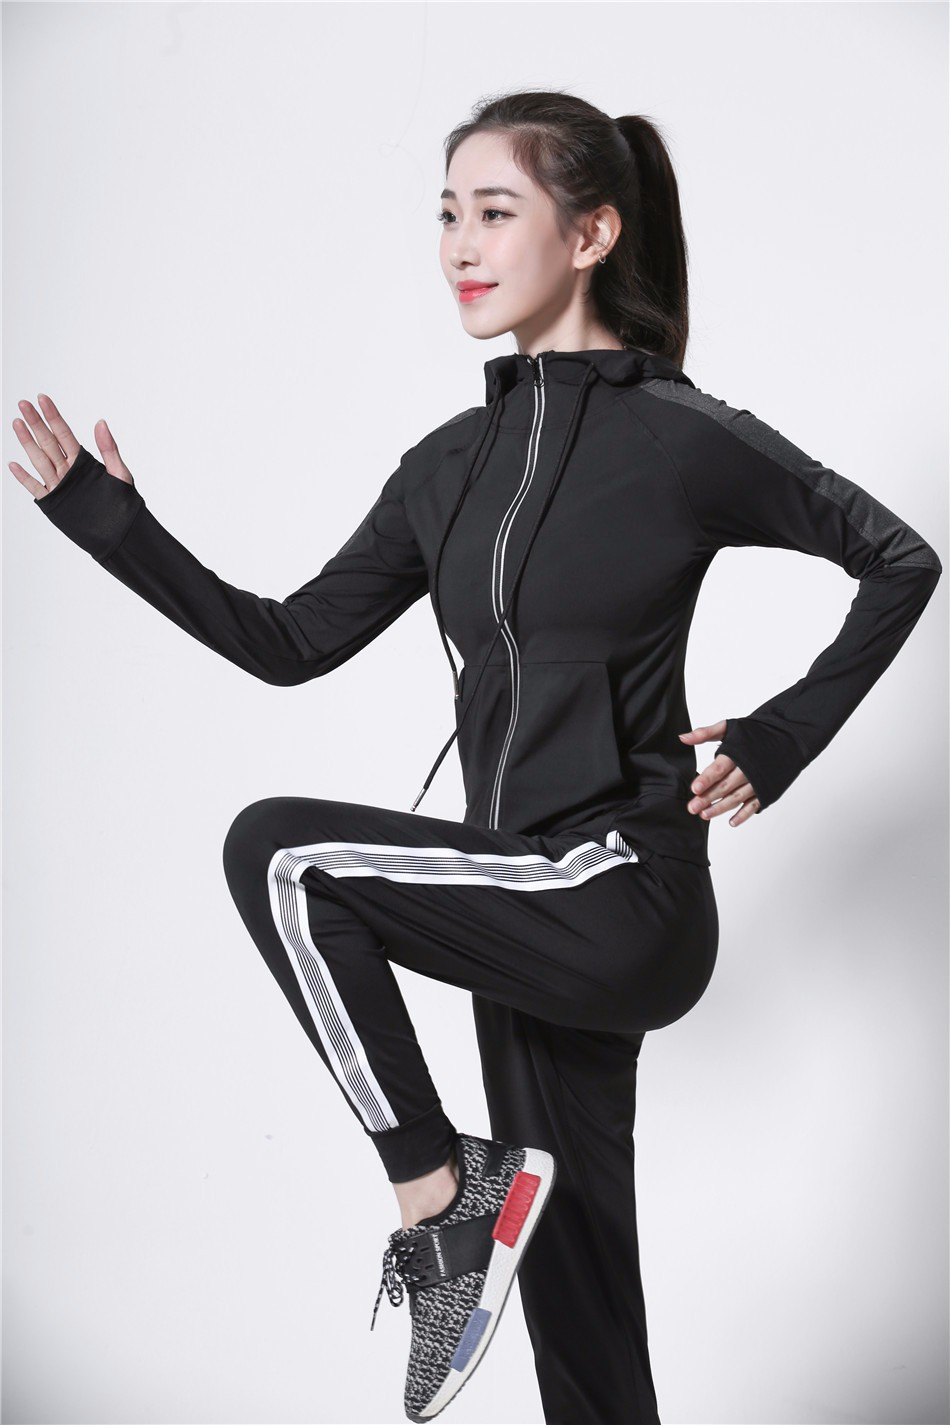 Women's Jackets 2018 New Long Sleeve Running Coat Yoga Gym Fitness Tight Tops Quick-Dry Breathable Sports Jacket Women 12